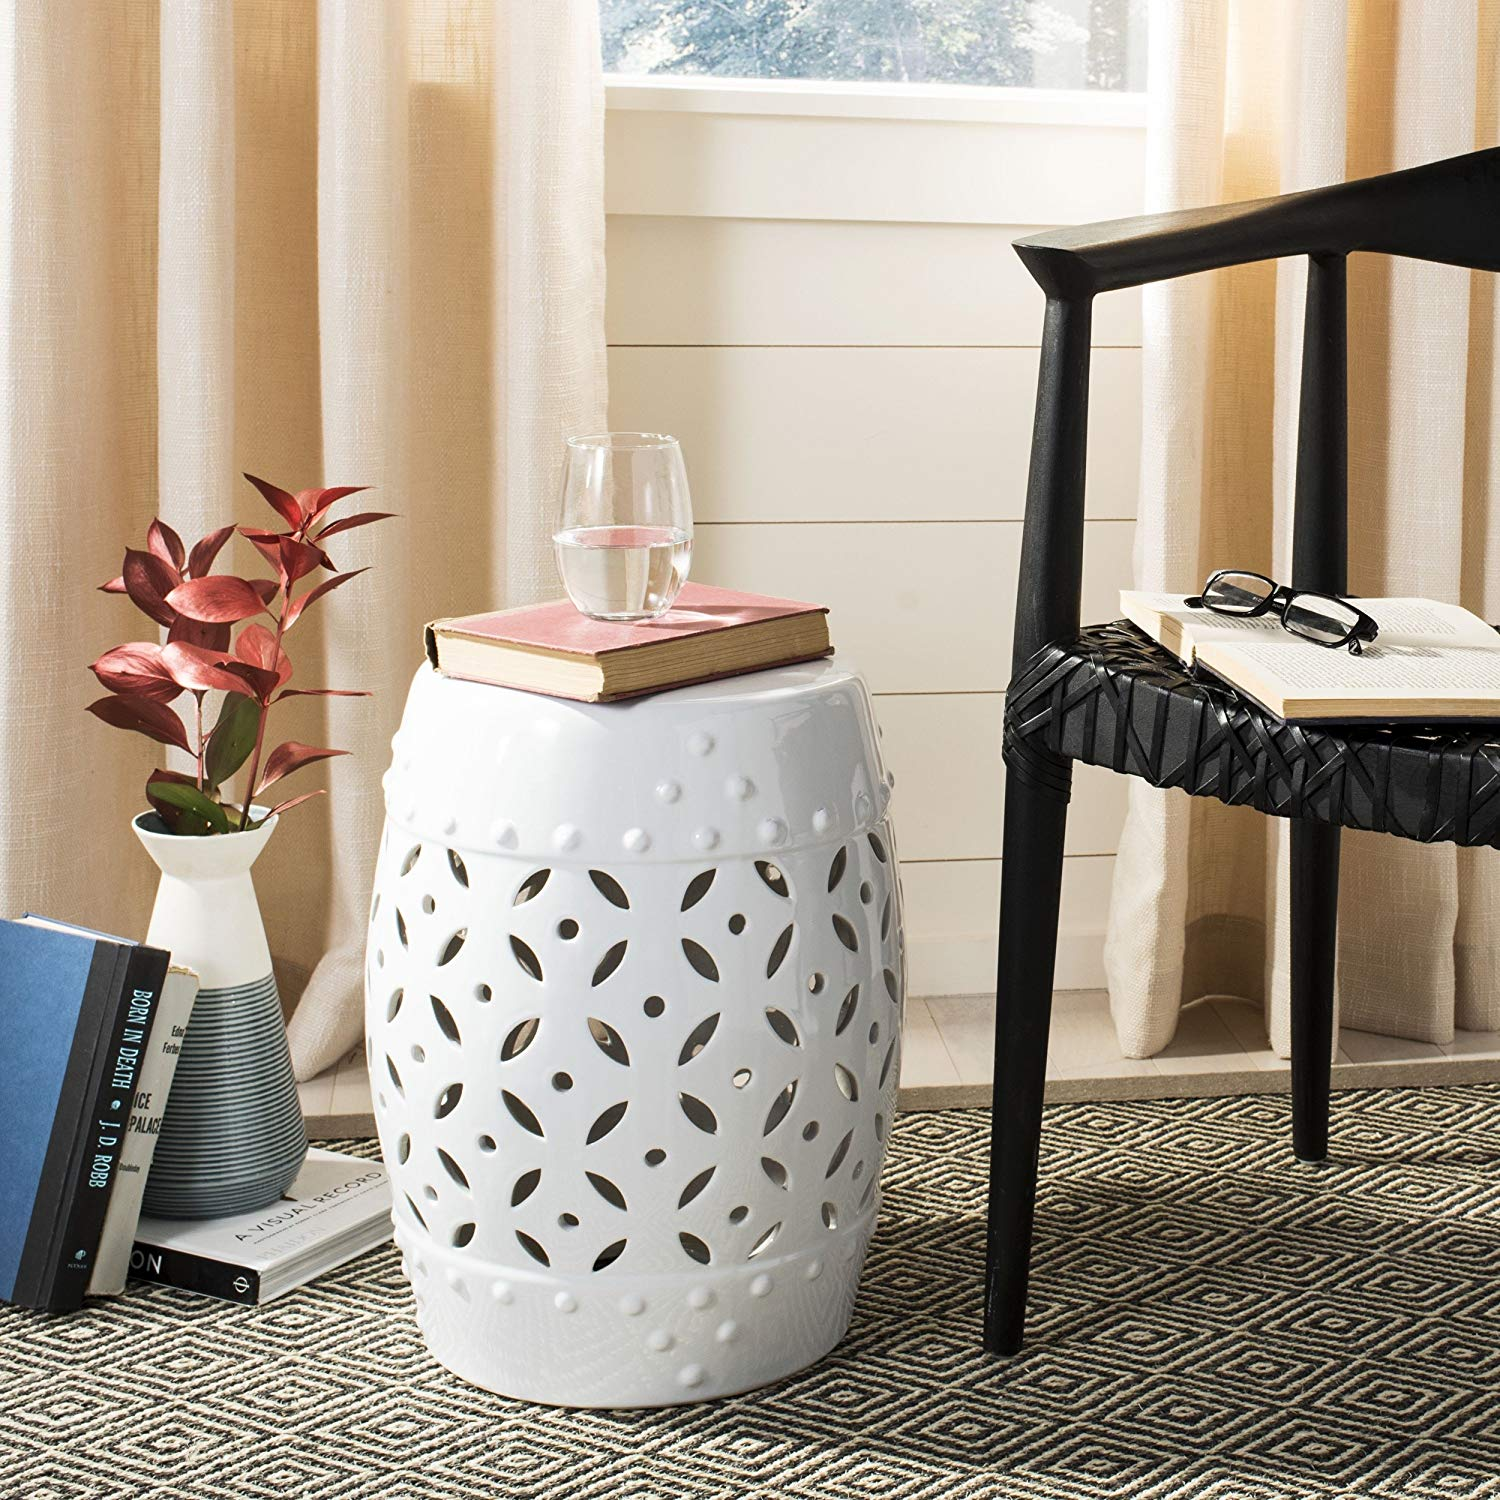 safavieh castle gardens collection lattice coin ceramic xnyl garden stool accent table white home kitchen small dining with leaf promo code pier one tray tables half round drawers